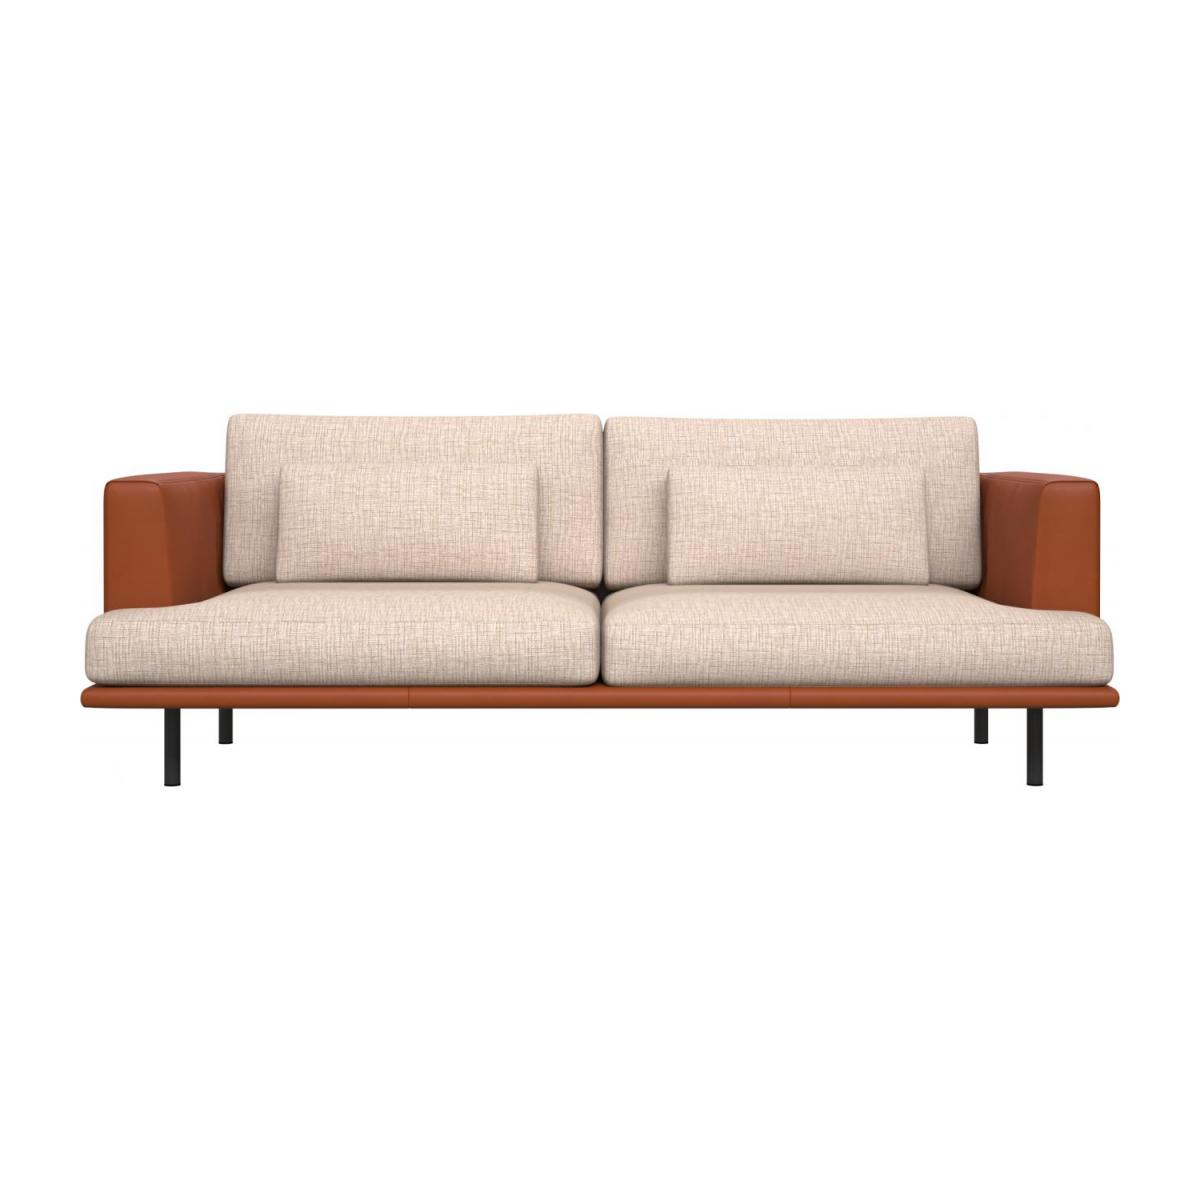 3 seater sofa in Ancio fabric, nature with base and armrests in brown leather n°3